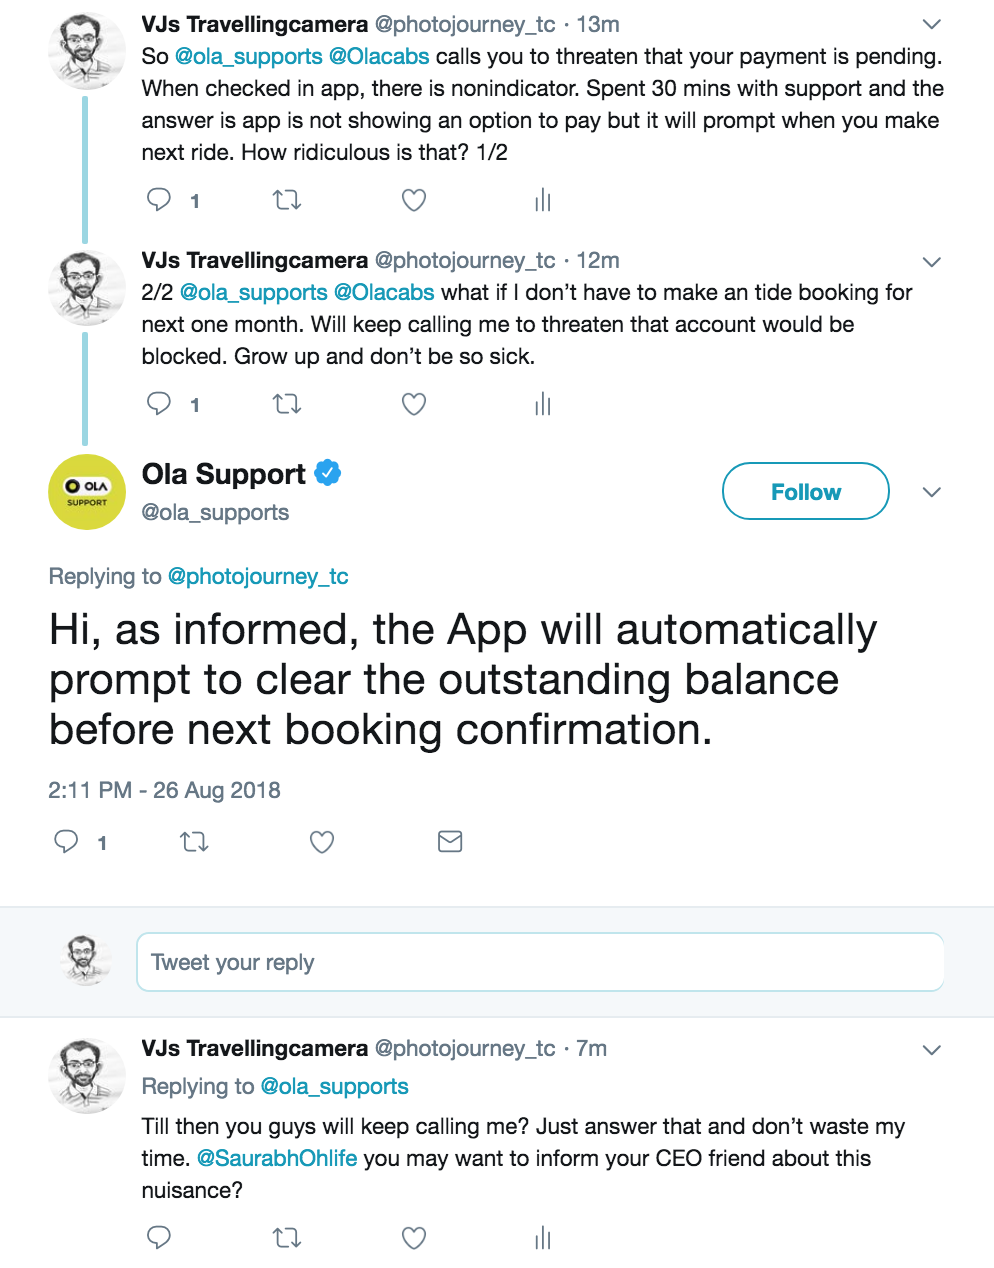 For last few days, I got 2 calls from OLA that I have to make pending payment otherwise my OLA account would be blocked. Next time, probably I will record this ridiculous message. When I checked the app, I had no way to make sure that the claim is right but assuming that claim is right I was expecting some sort of link/button to make payments.    I thought I am unable to find but there must be one, so let me reach out to support and clear the pending stuff, whatever it is. Support in app sucks so I reached Twitter (the first screenshot shows initial conversation which then moved to messages) and here you go with the conversation through messages -